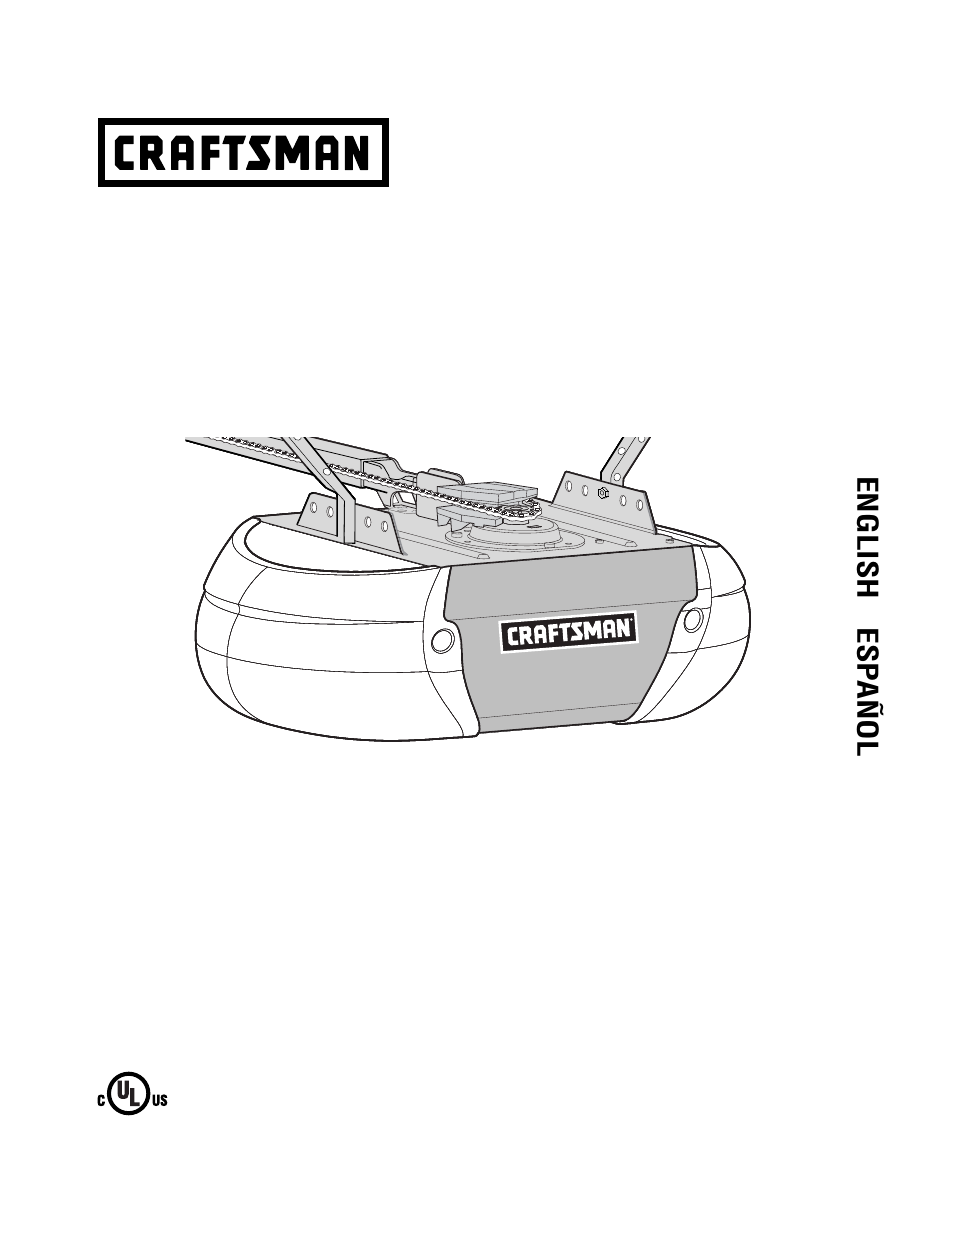 Craftsman 13 Hp Garage Door Opener Wiring Diagram Genie Schematics Honda Car Parts Manual